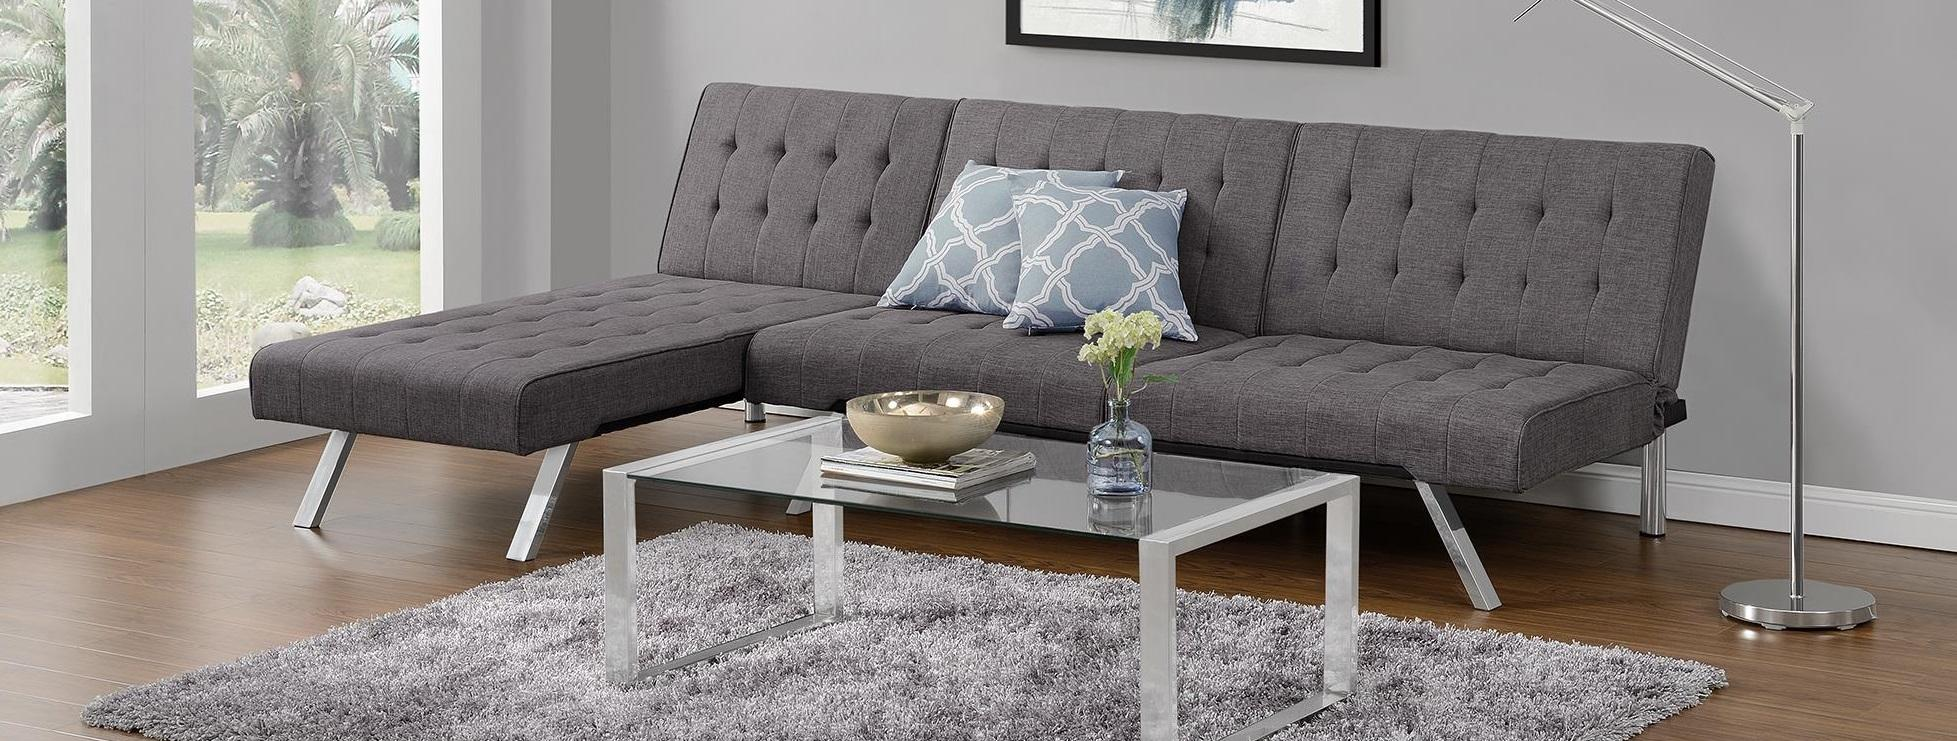 Emily Chaise Lounger and Sofa Futon  sc 1 st  Roselawnlutheran | Decor Ideas : futon with chaise lounge - Sectionals, Sofas & Couches